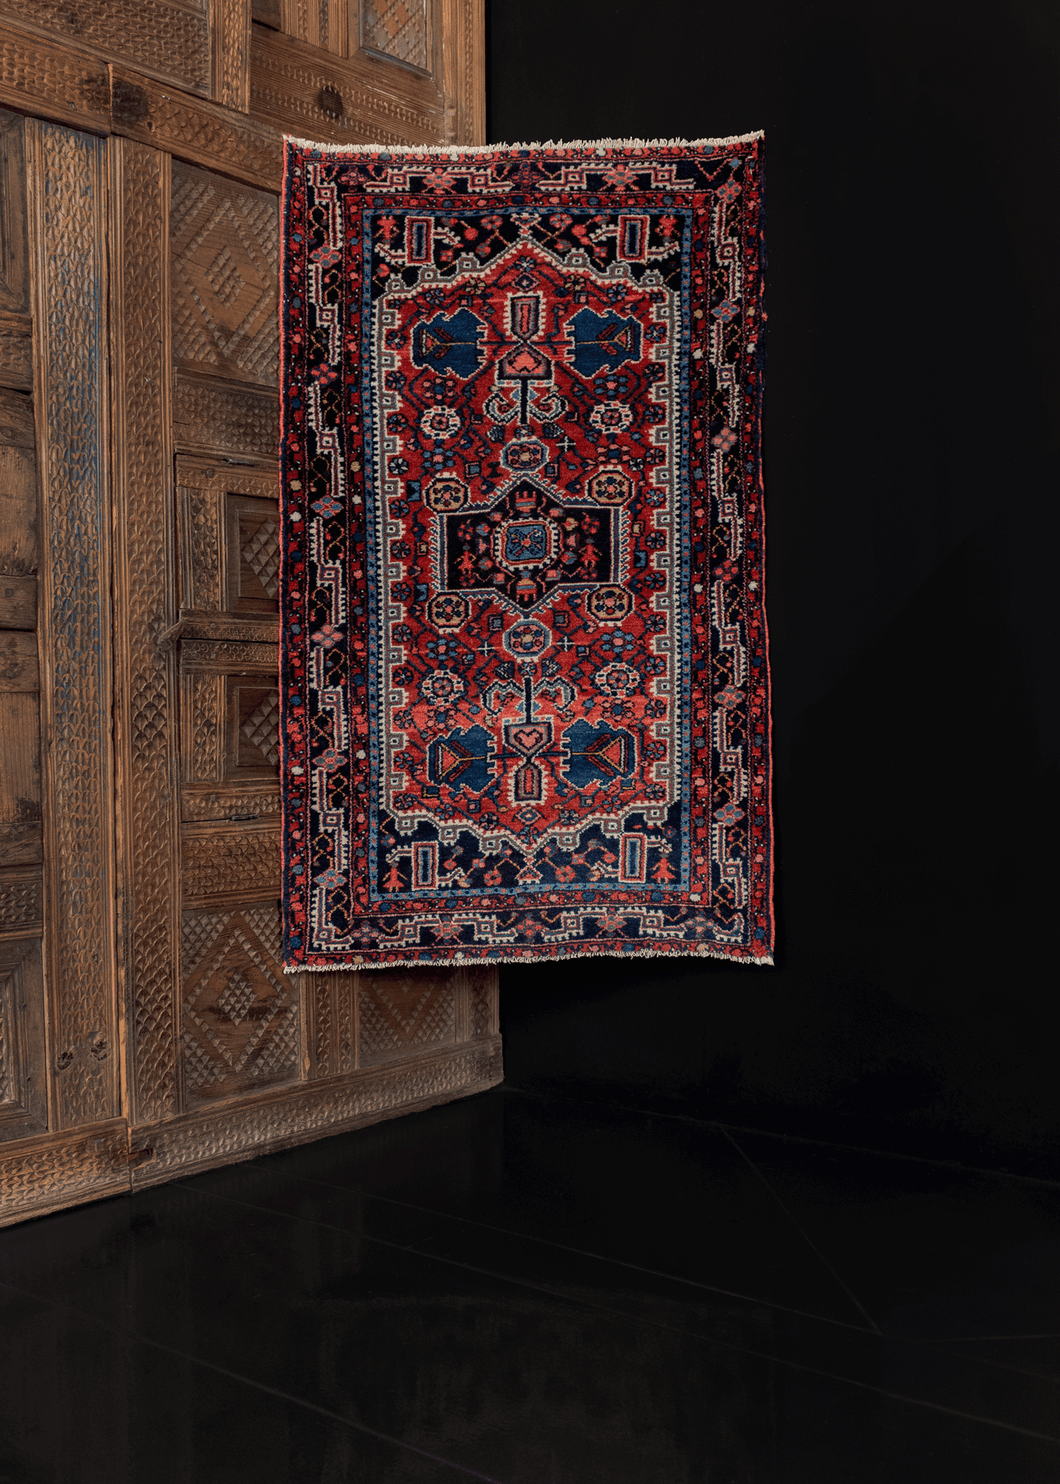 Hamadan rug with thick low pile and jewel tones, with geometric design